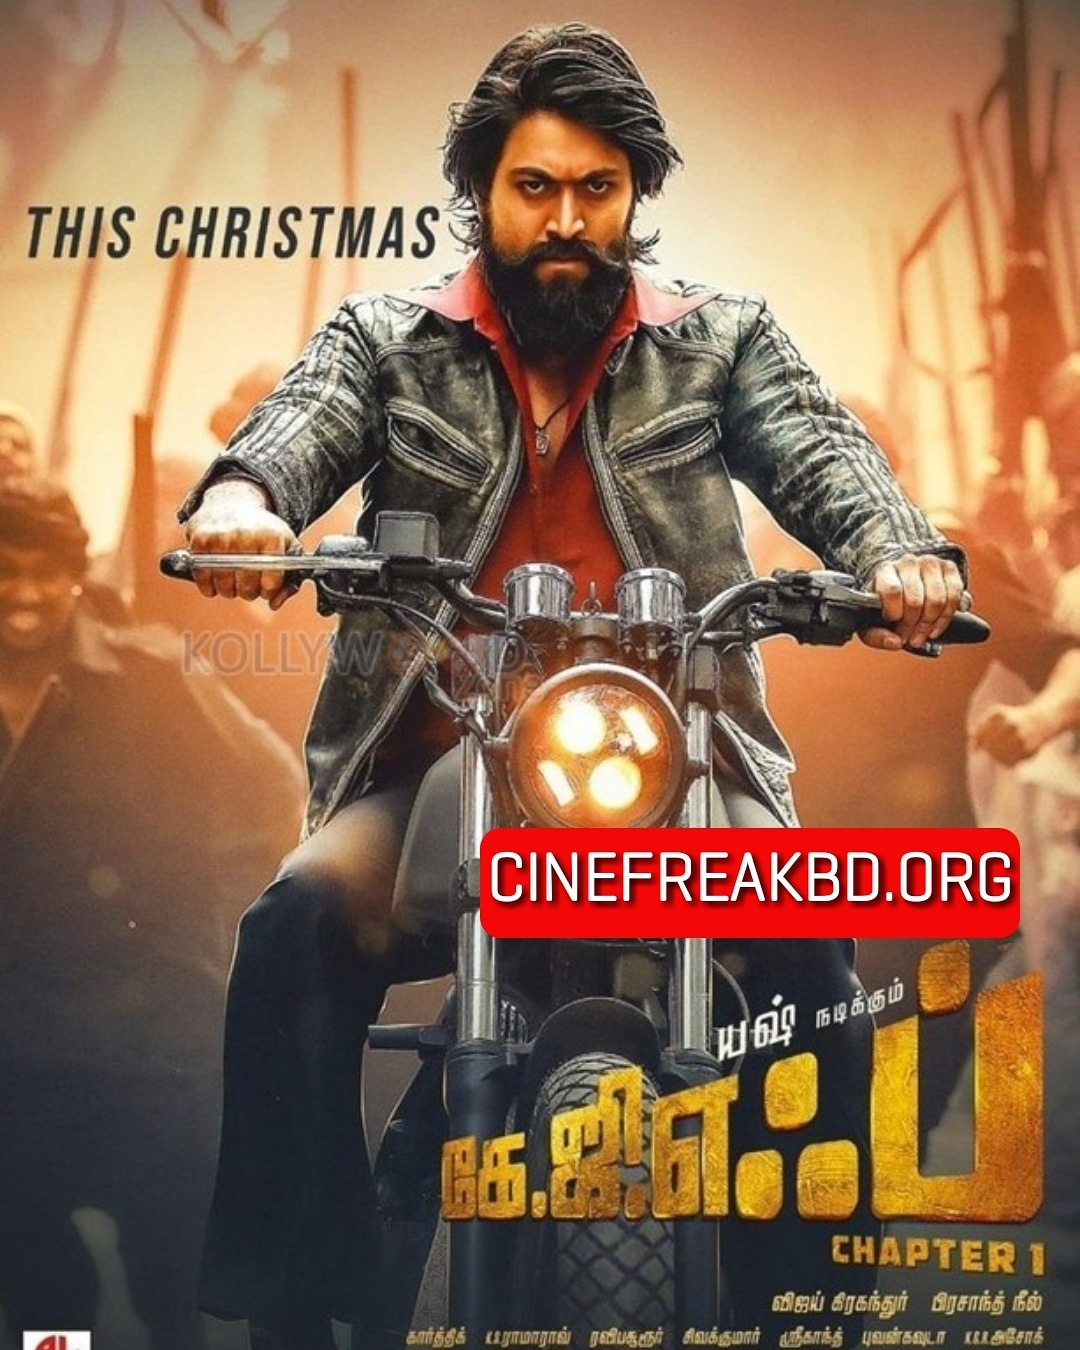 What is the story of Kannada movie KGF? Why is it so hyped? - Quora